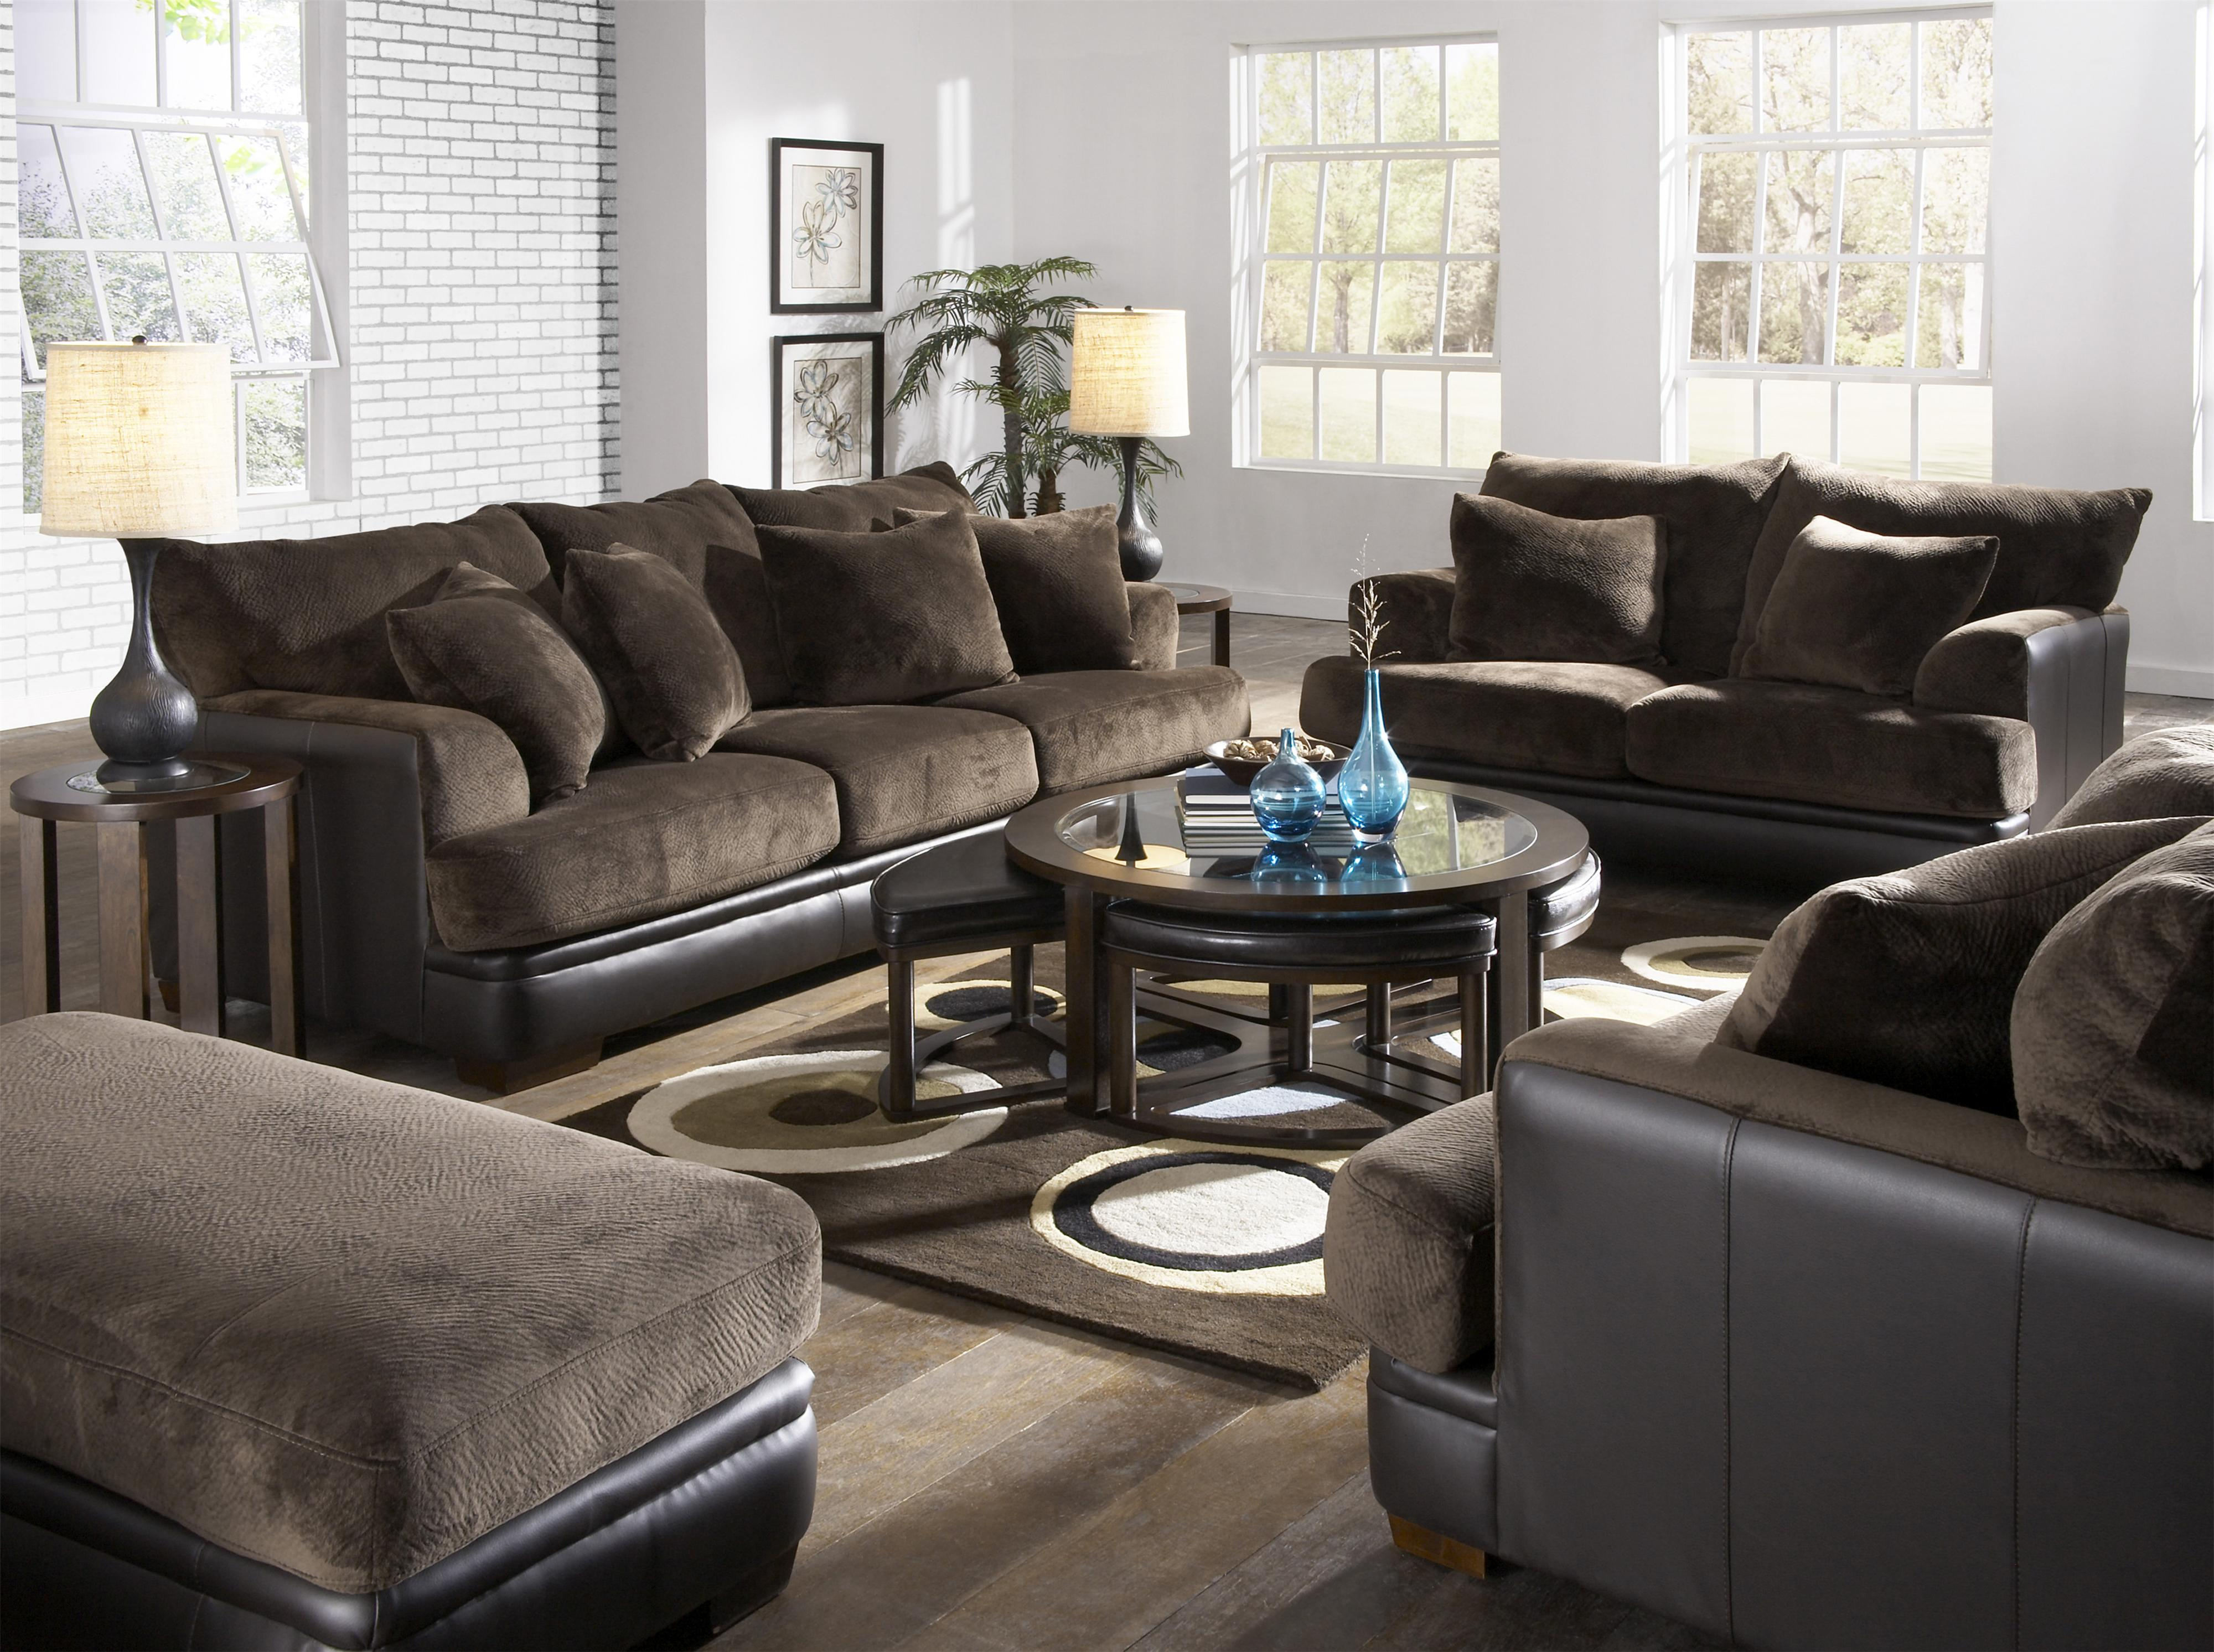 Jackson Furniture Barkley Large L Shaped Sectional Sofa with Right